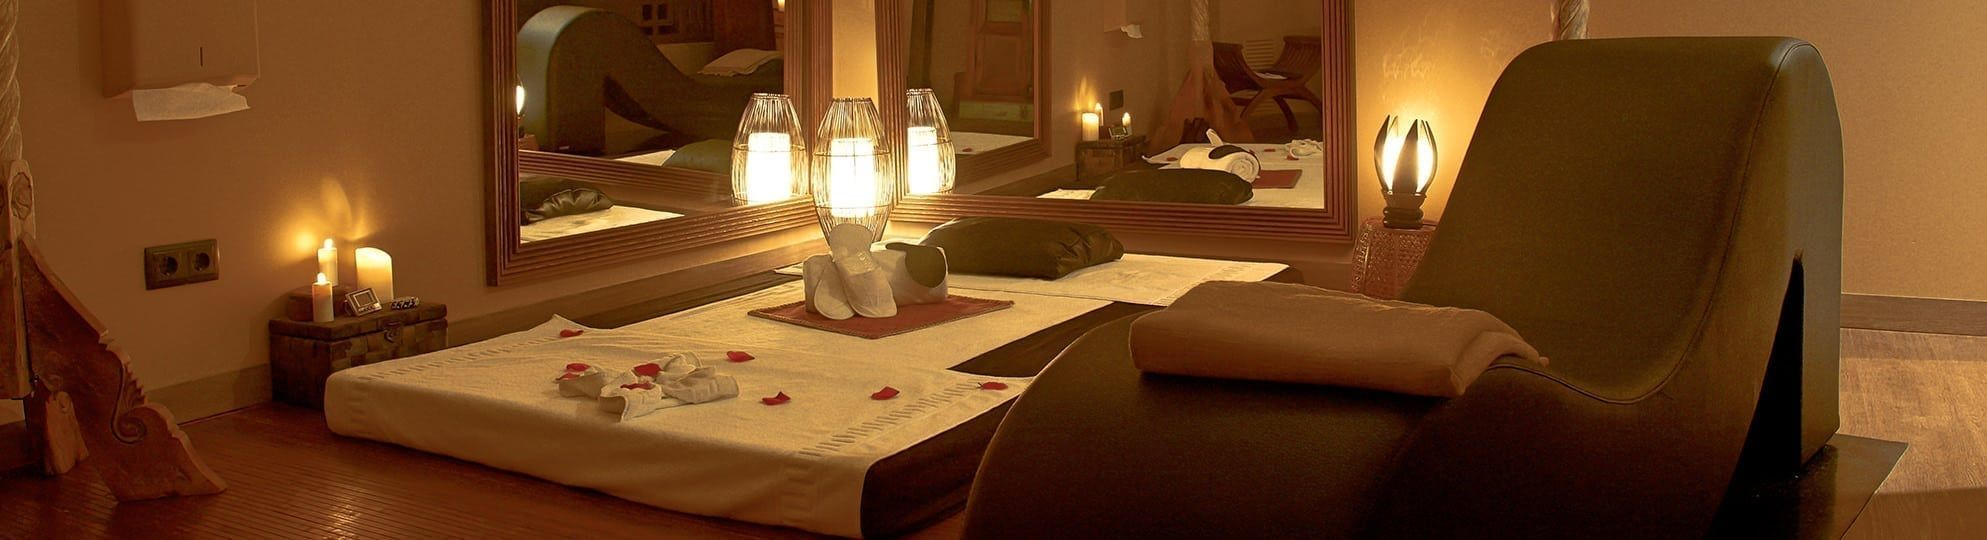 oriental massage center in Barcelona